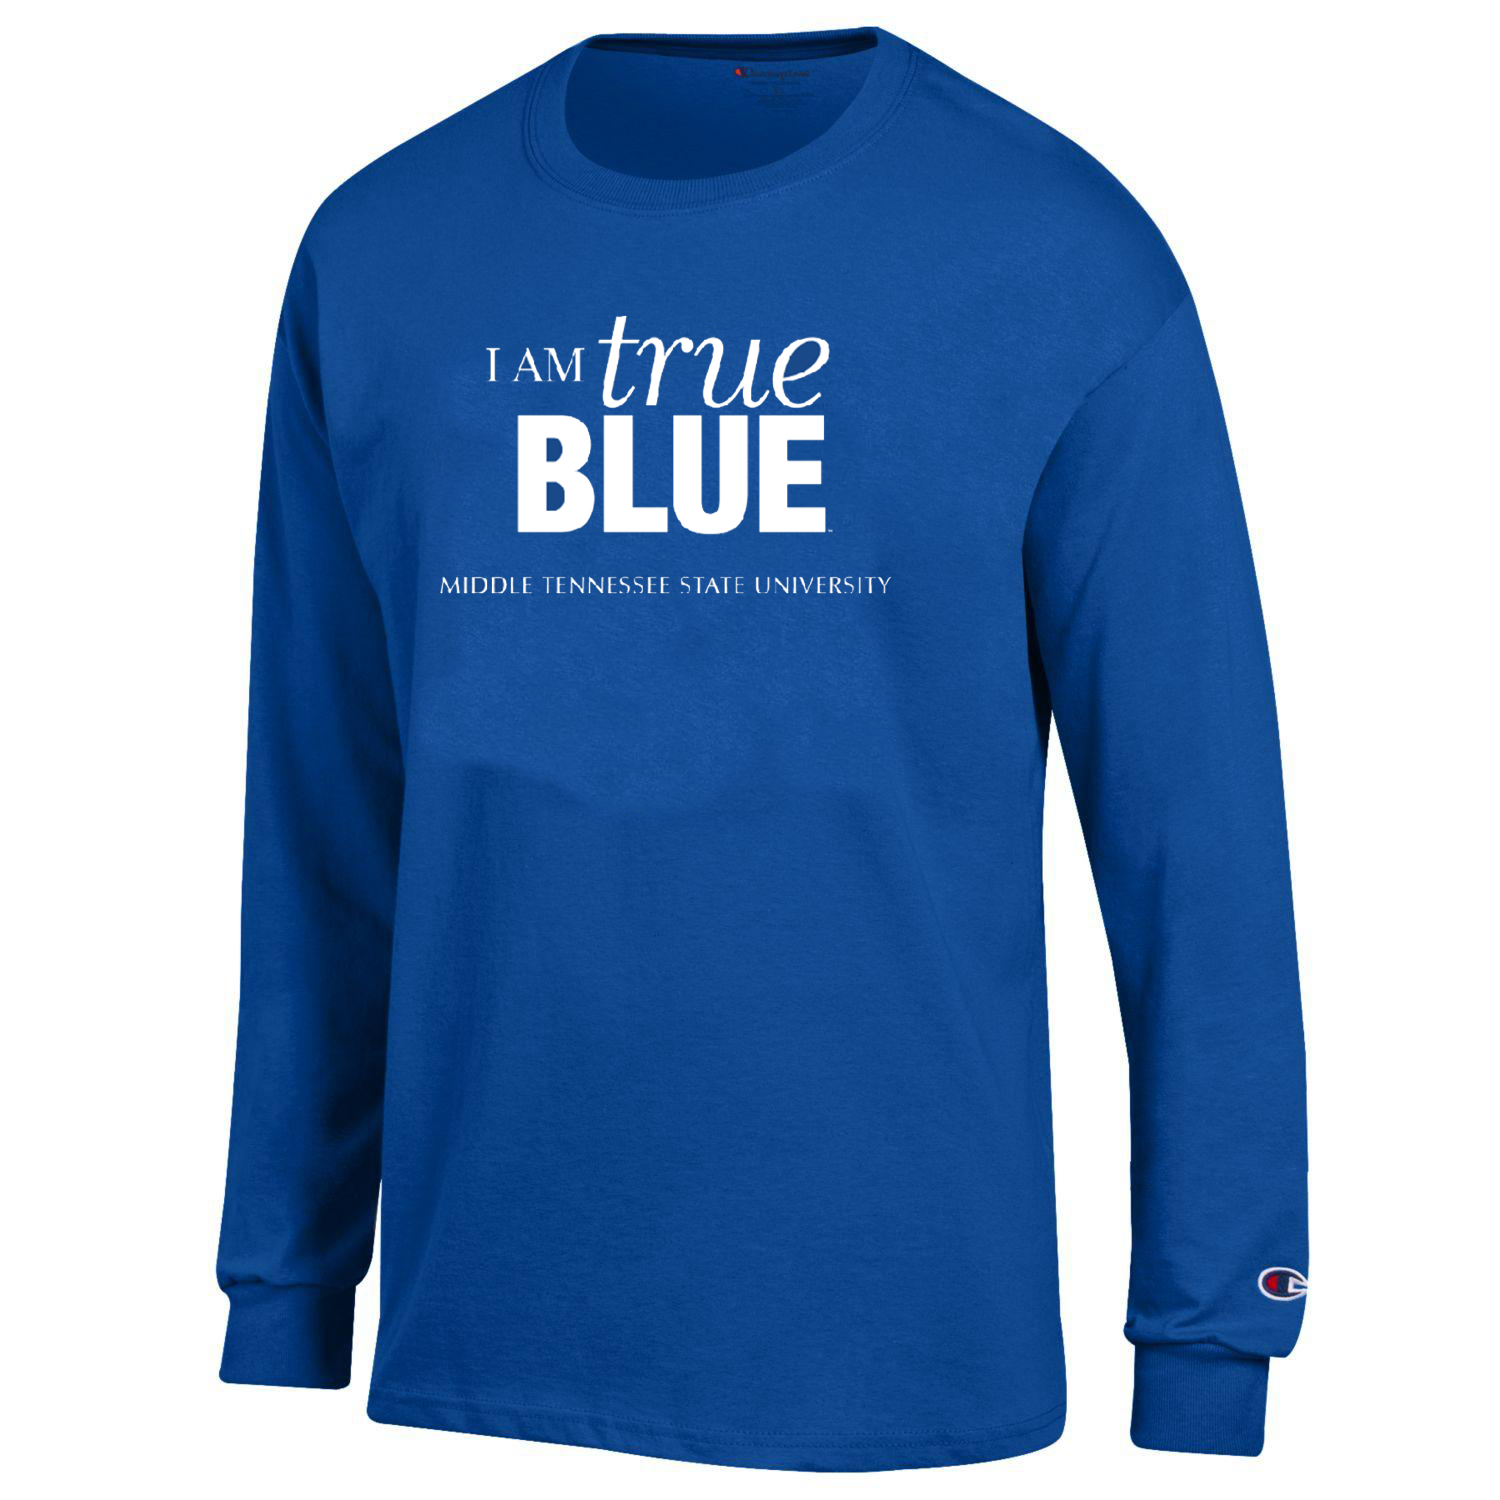 I Am True Blue Middle Tennessee State University Long Sleeve Shirt